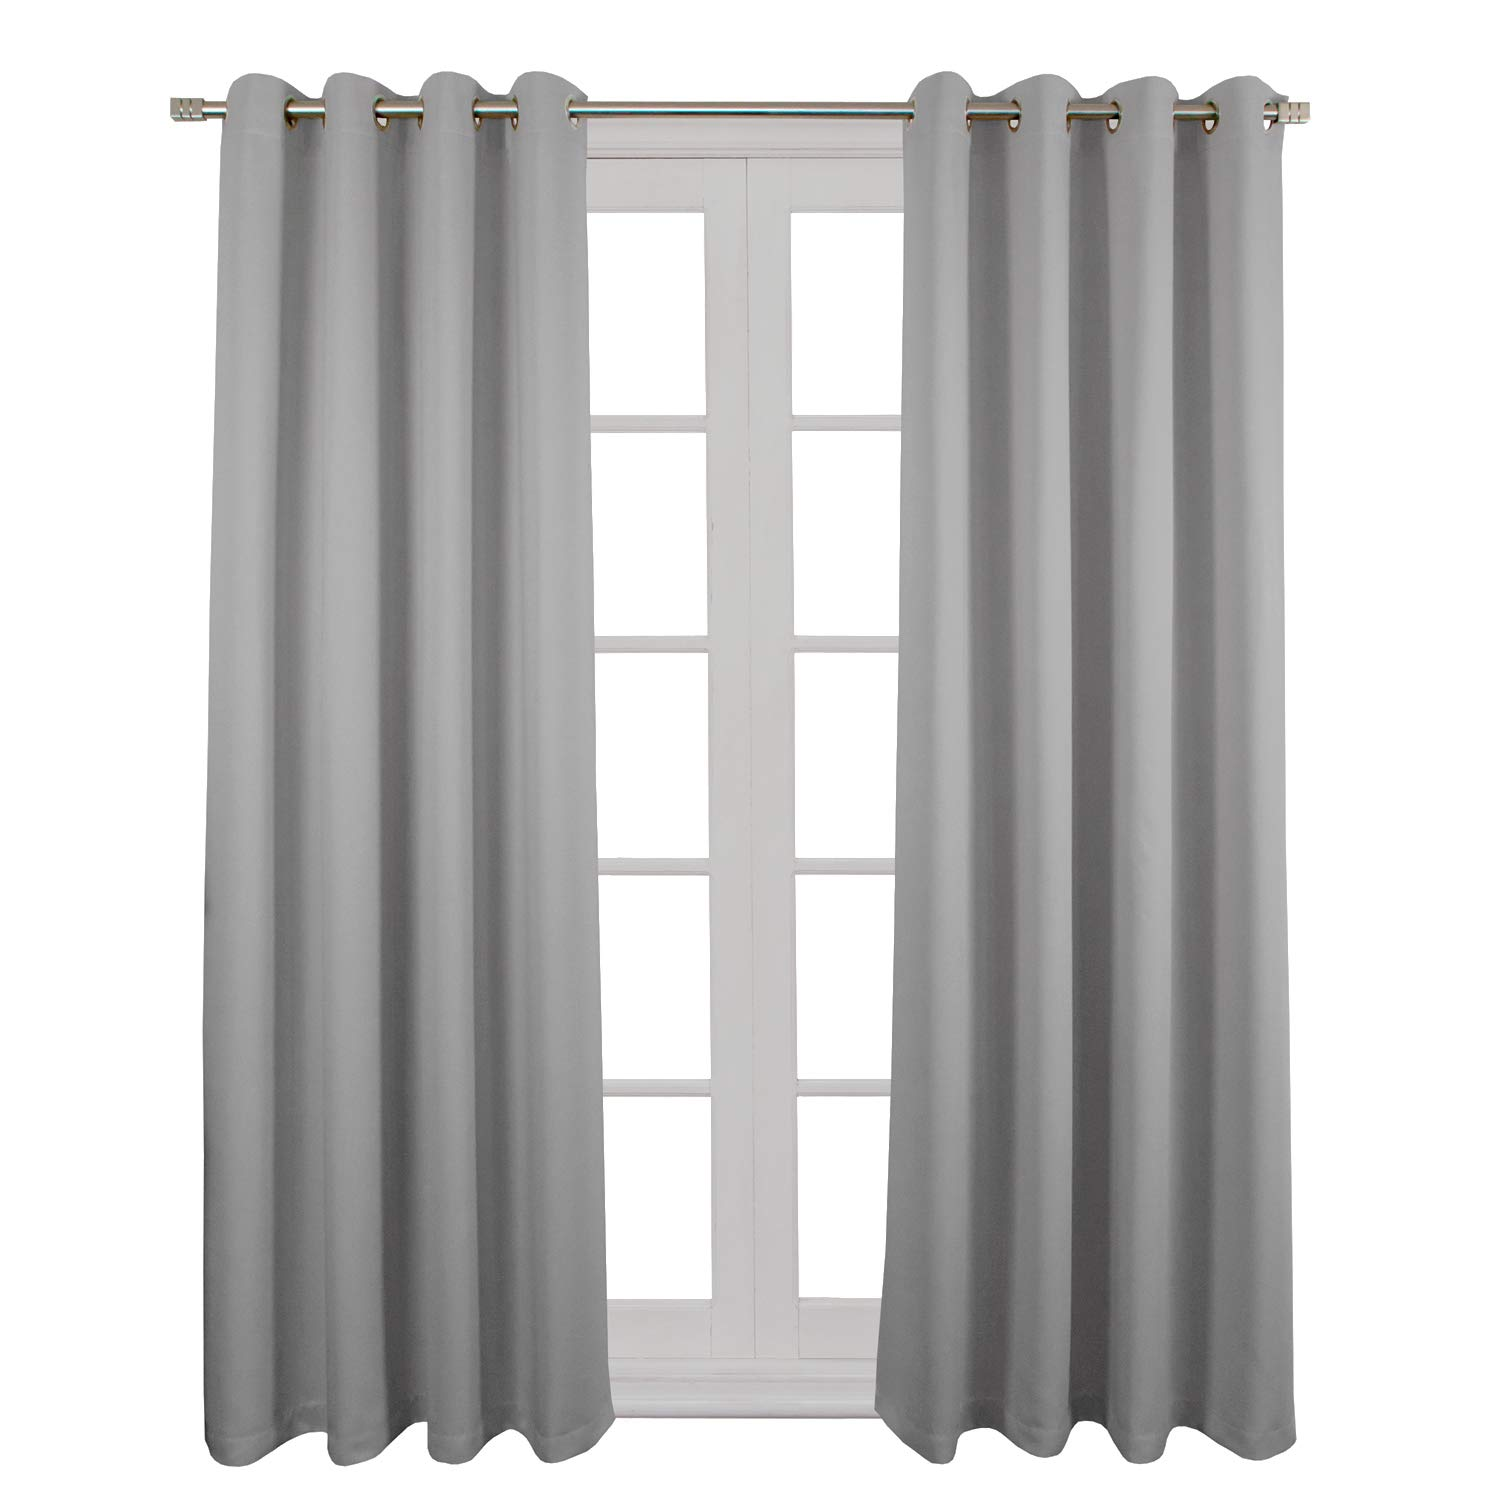 Room Darkening Curtains Thermal Insulated Blackout Drapes Windows Grommet Top Panels for Living Room Bedroom – Legend Collection by NIM Textile - 2 Panel Set, 54 x 63 Inch, Beige